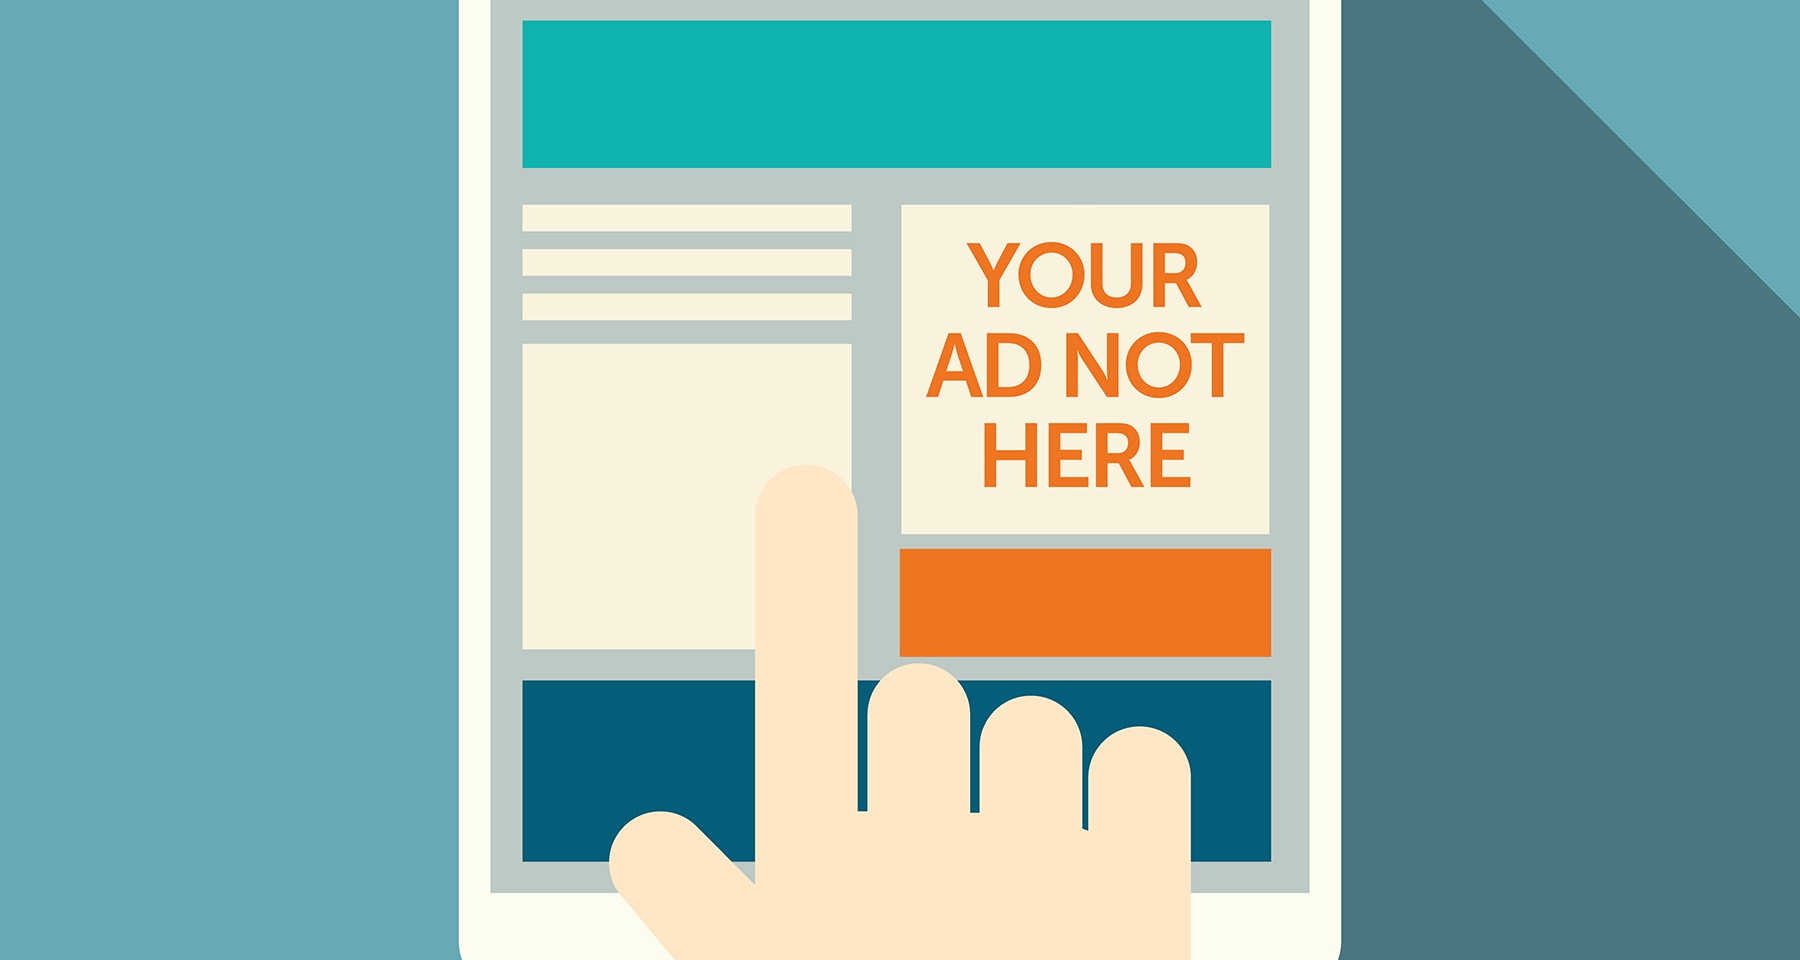 Ad blocking is more about personal data than on-target ads